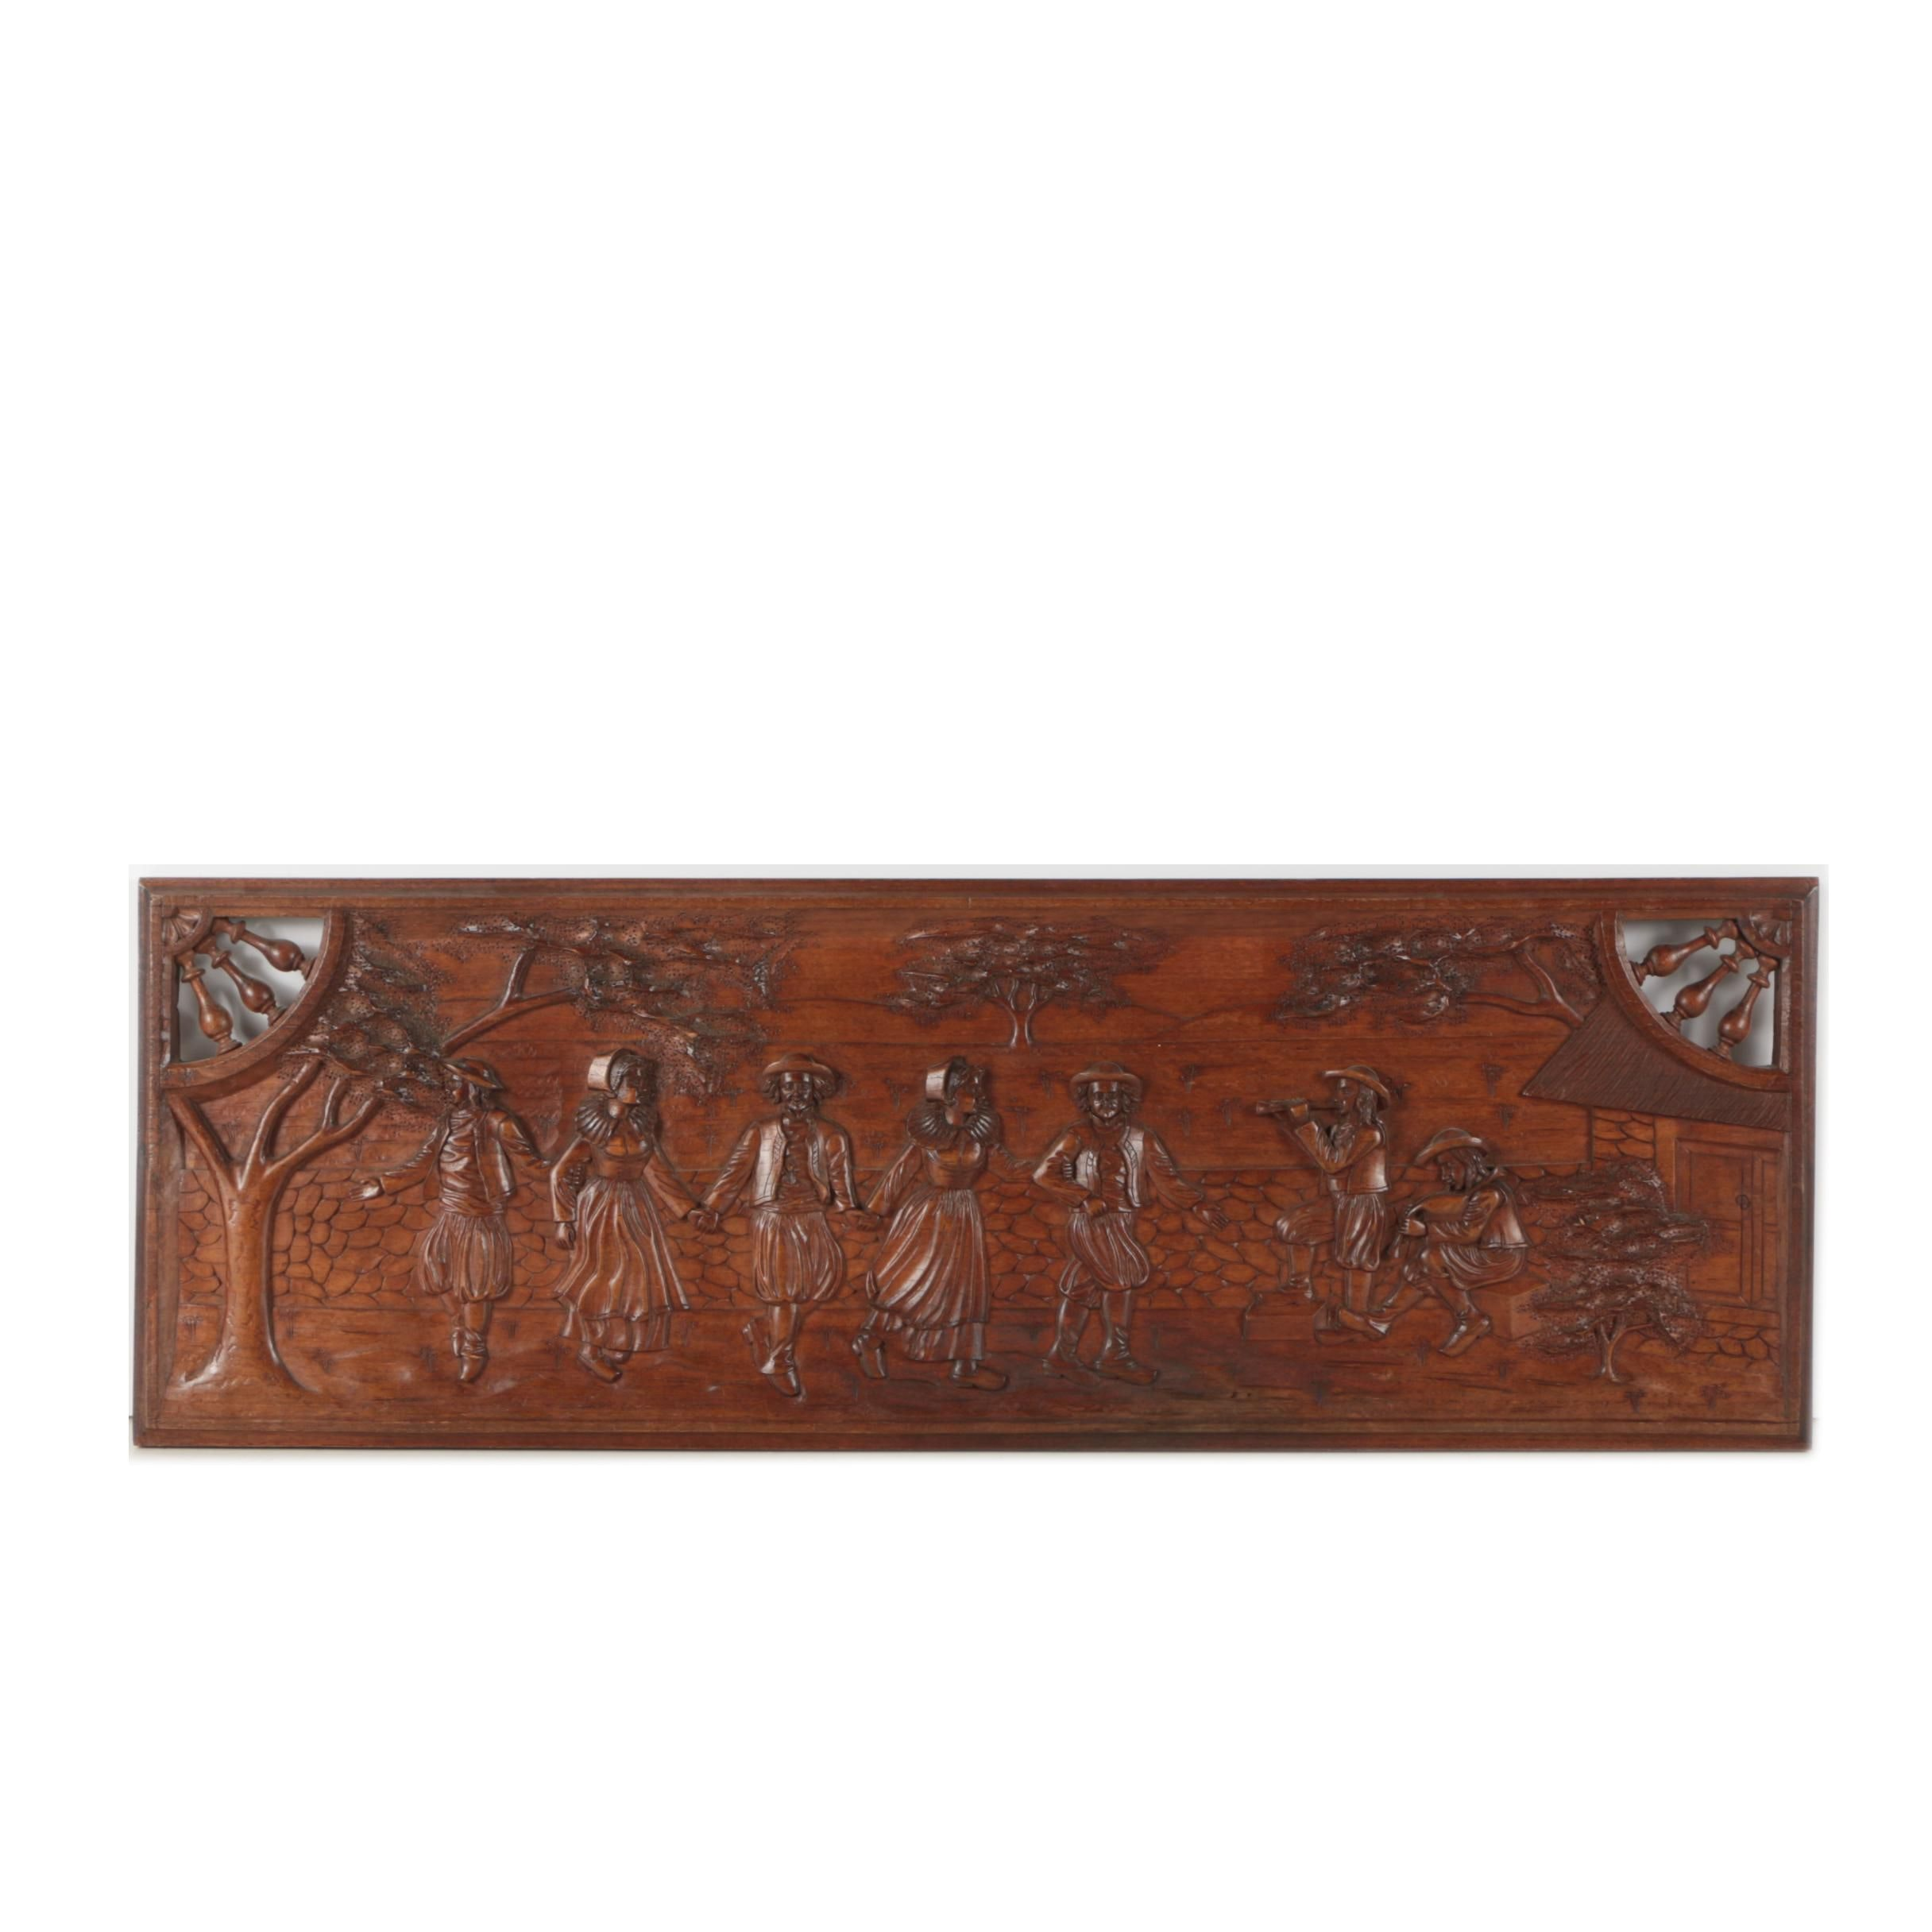 Hand-Carved Panel of Dancing Figures